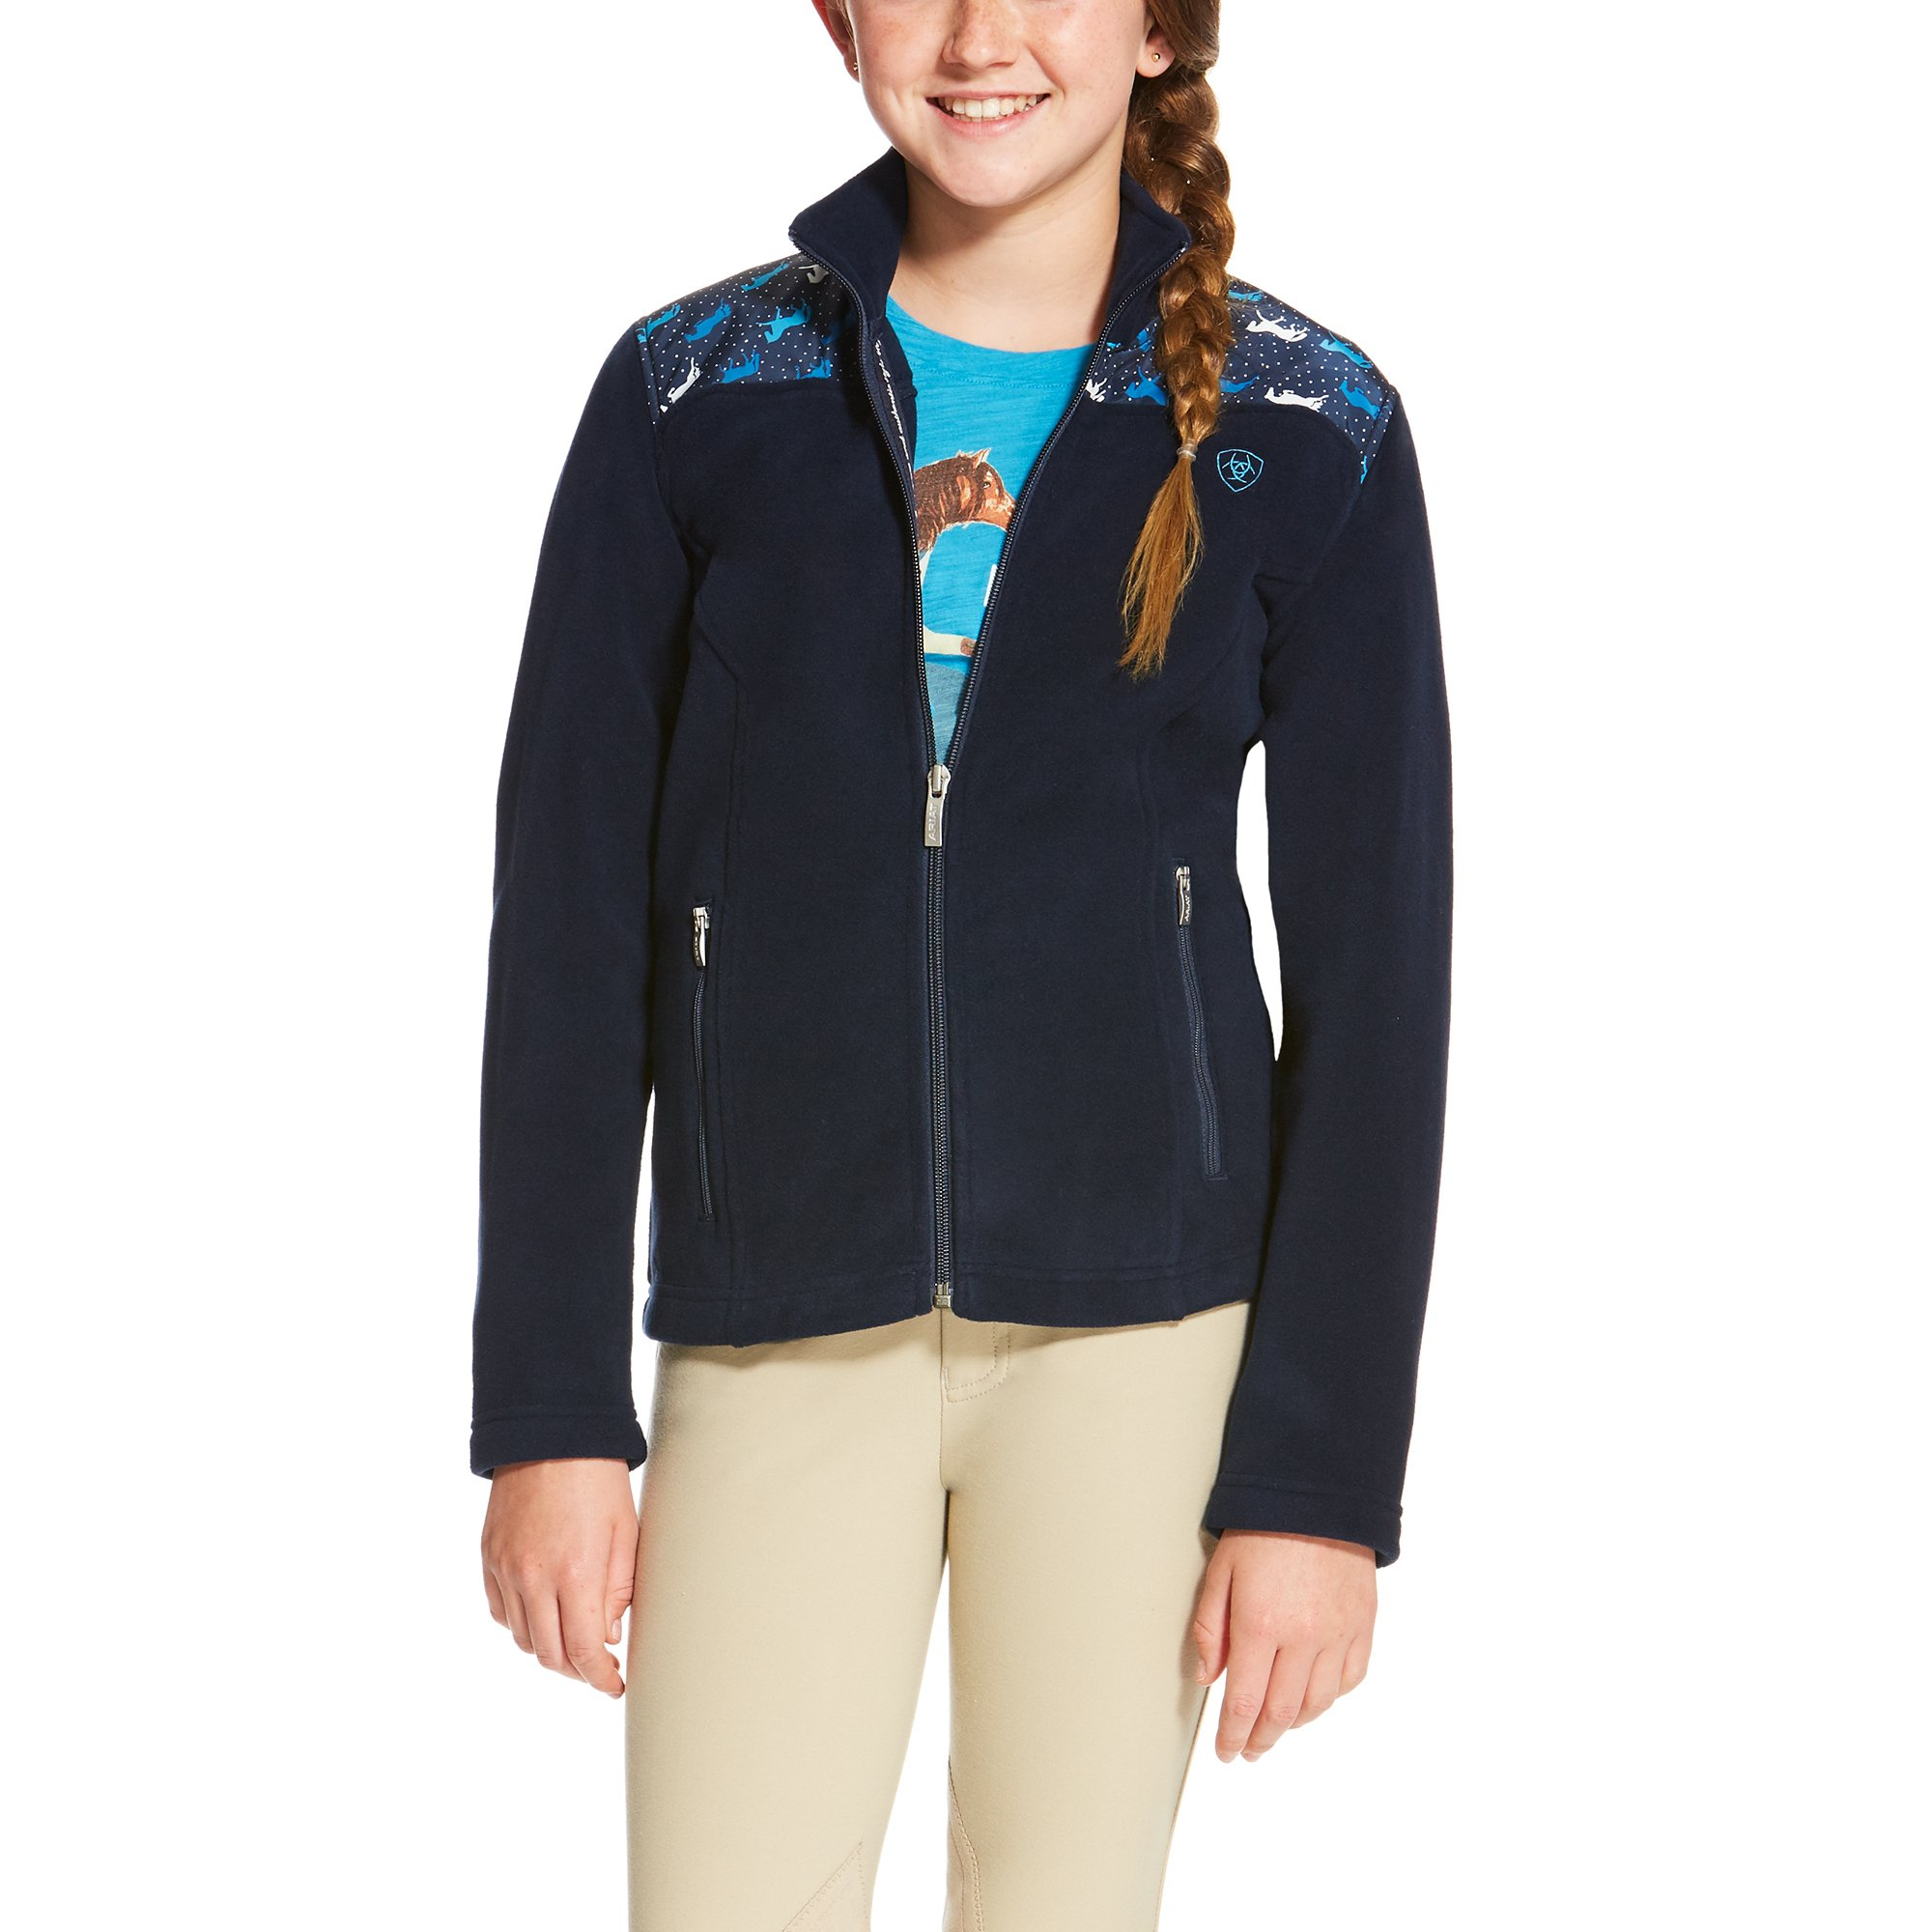 Basis Full Zip Girls Fleece - Forelock and Load